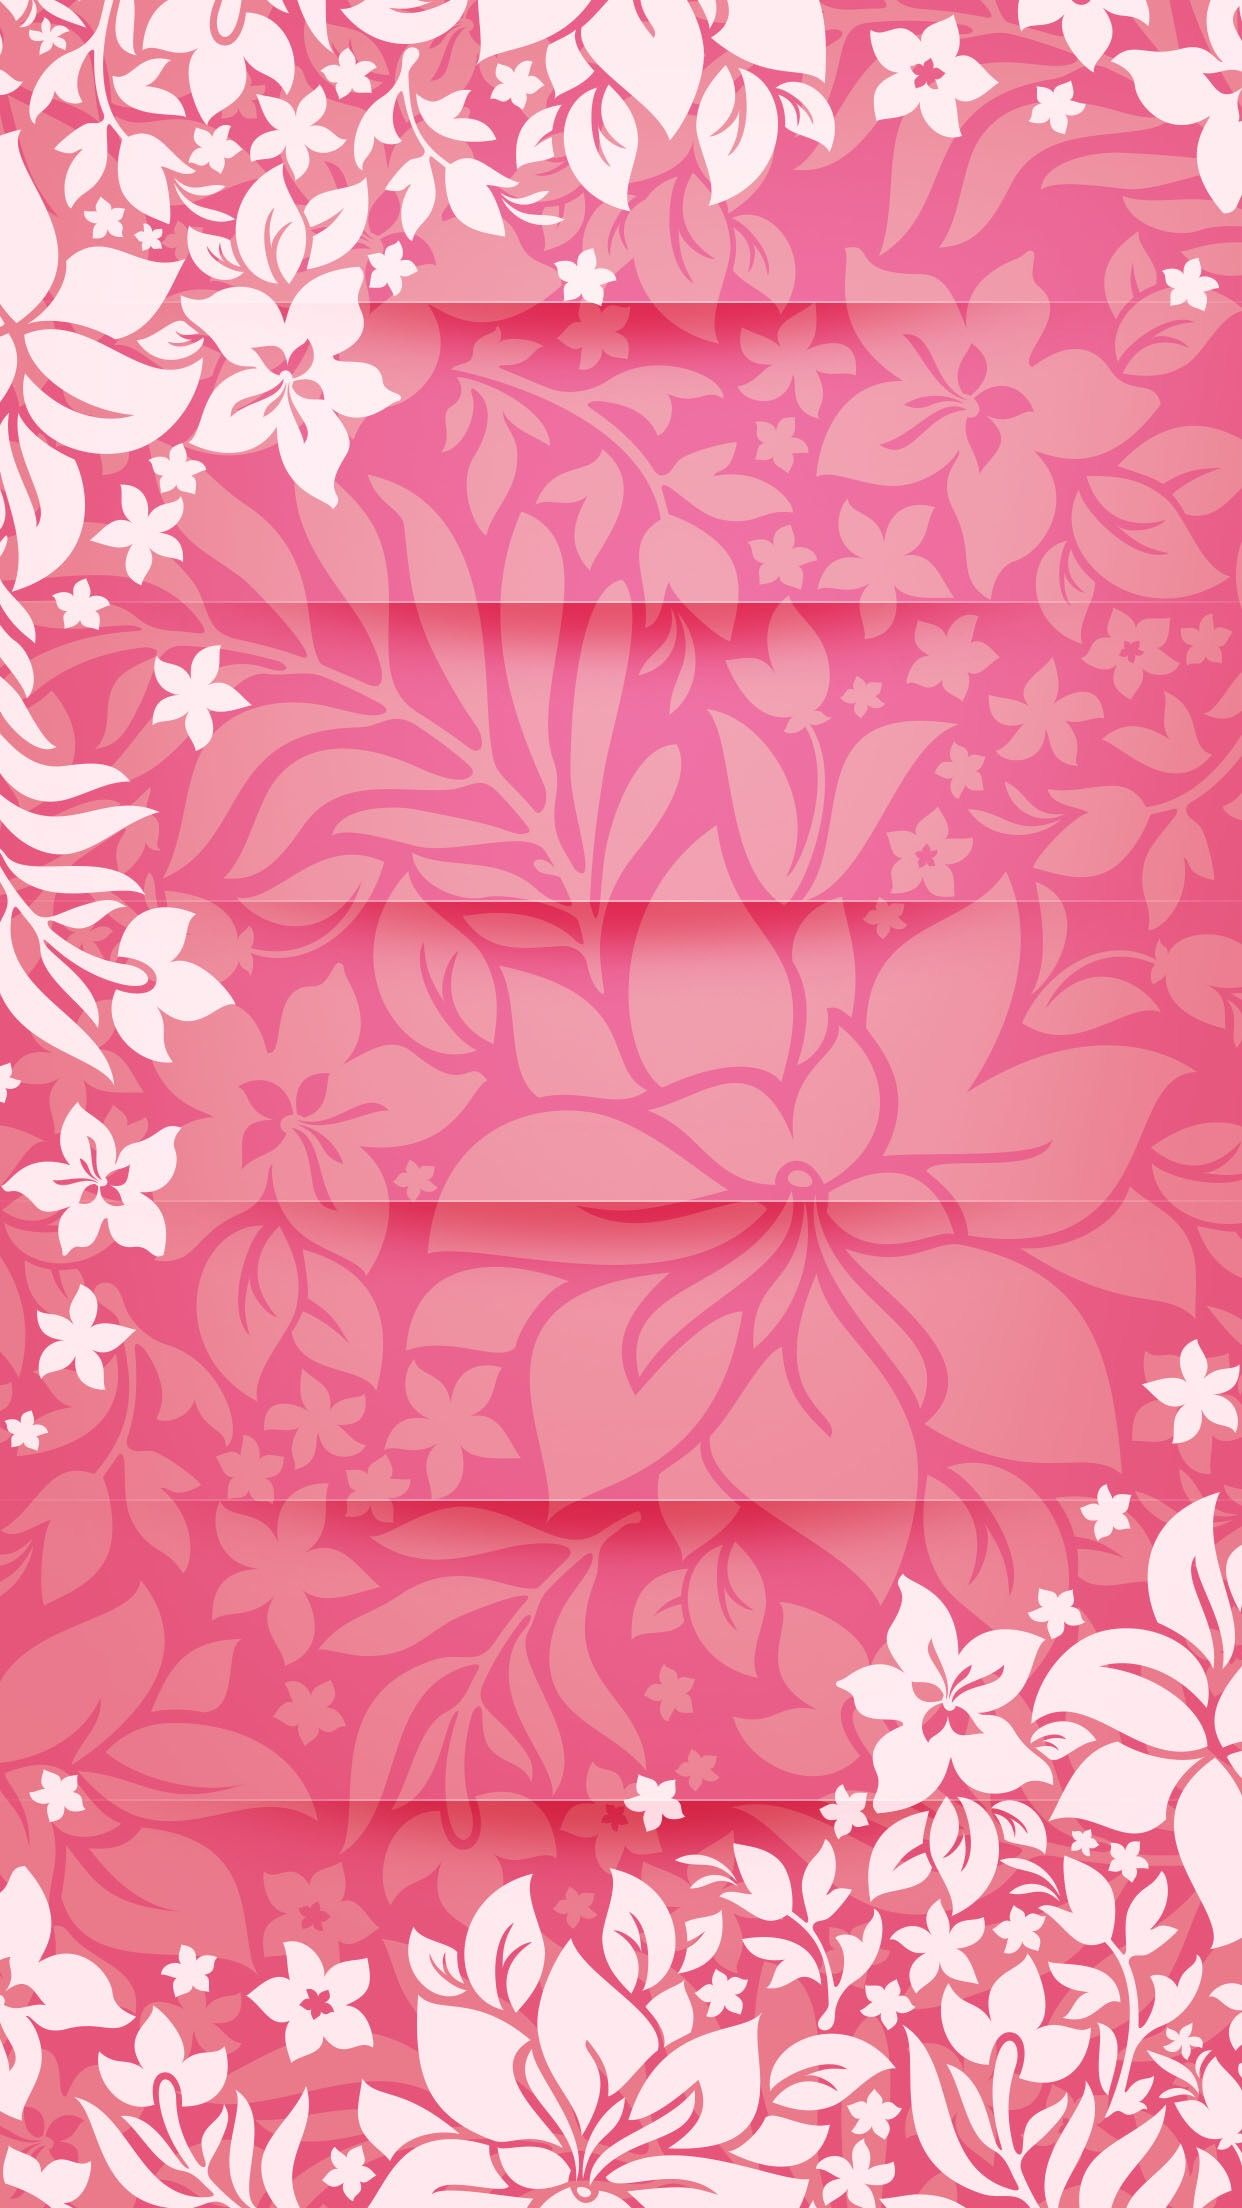 Tap And Get The Free App Shelves Flower Pattern Pink Tracery Unicolor Girly For Girls Iphone Wallpaper Girly Iphone Wallpaper Images Phone Wallpaper Images